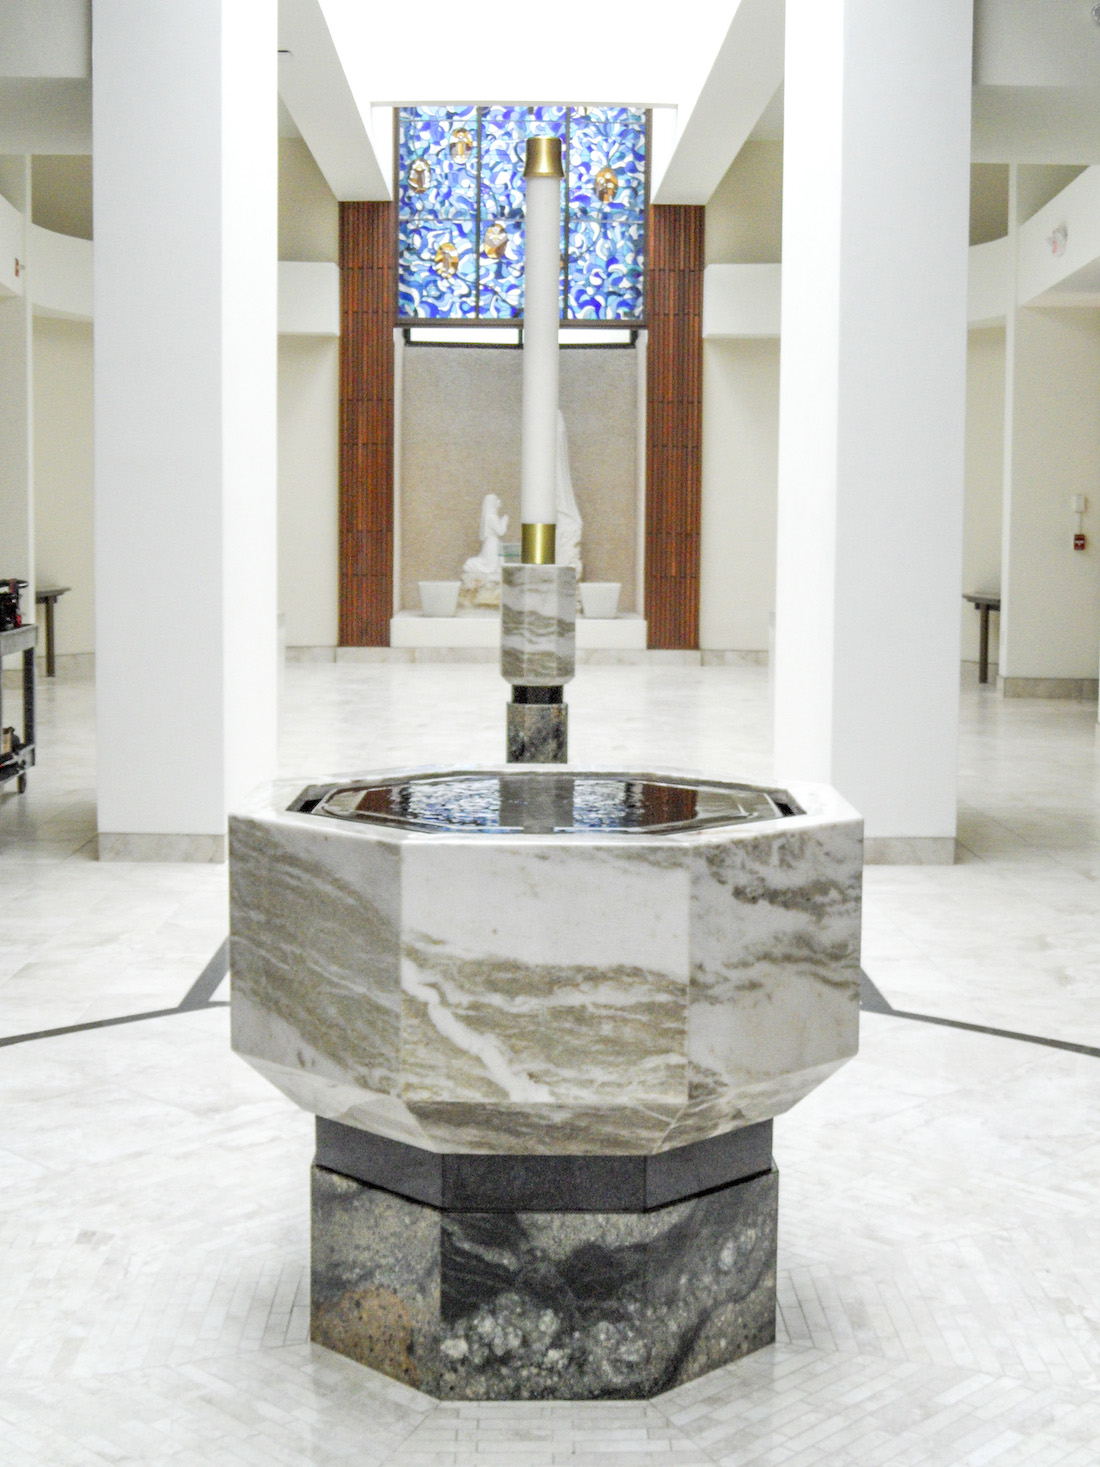 Negative Edge Baptismal Font, Our Lady of Lourdes, Dunedin, FL